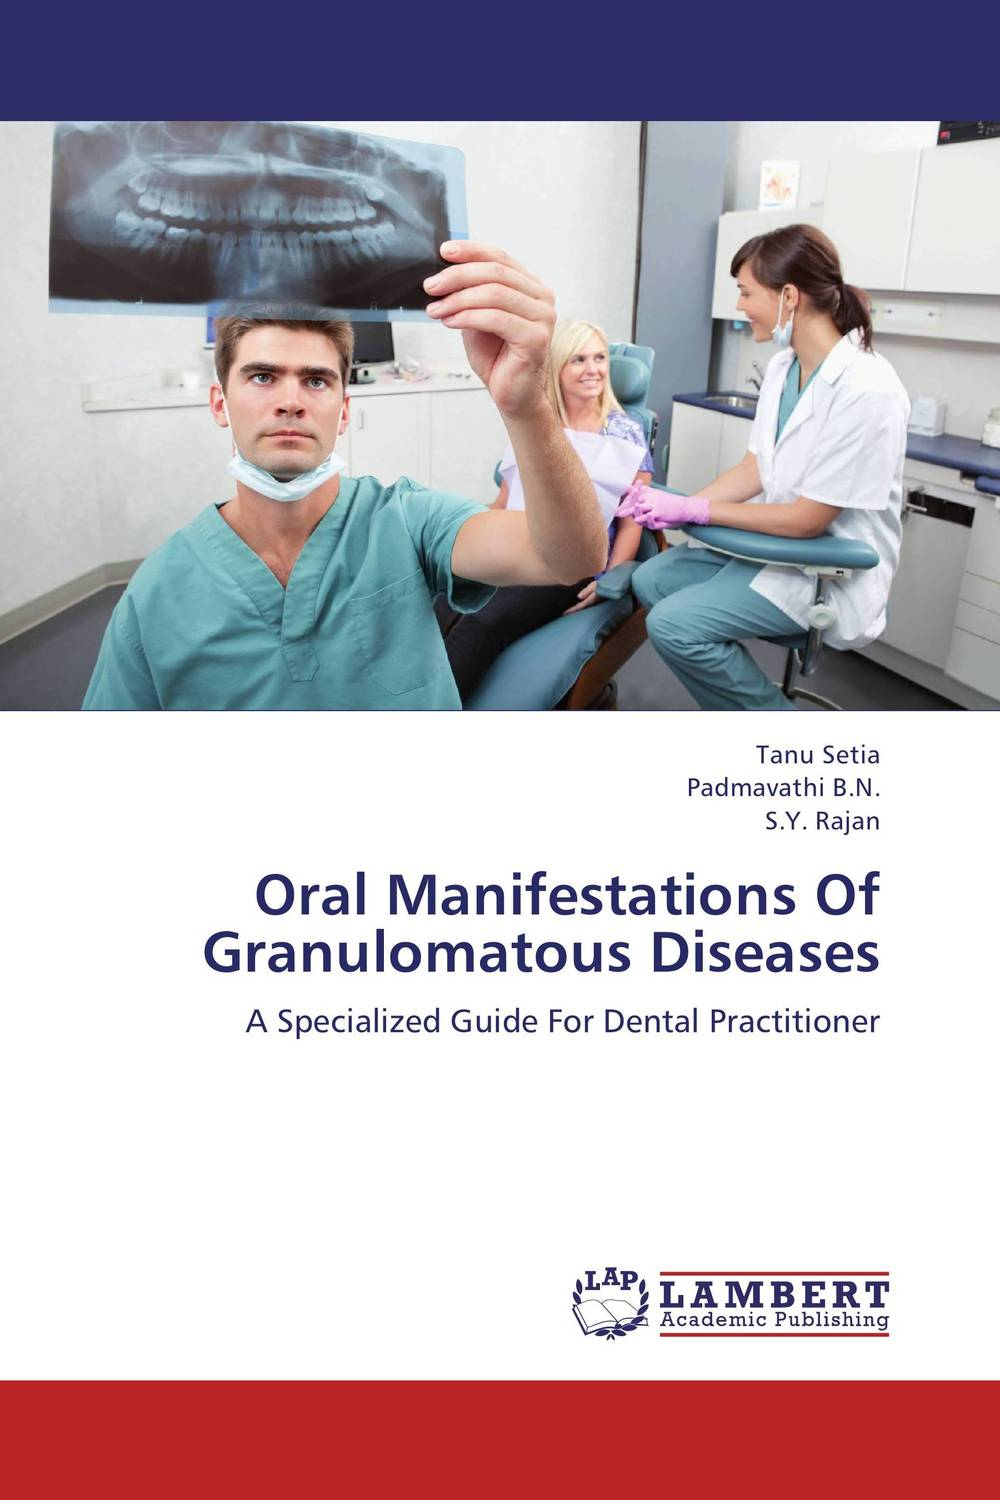 Oral Manifestations Of Granulomatous Diseases